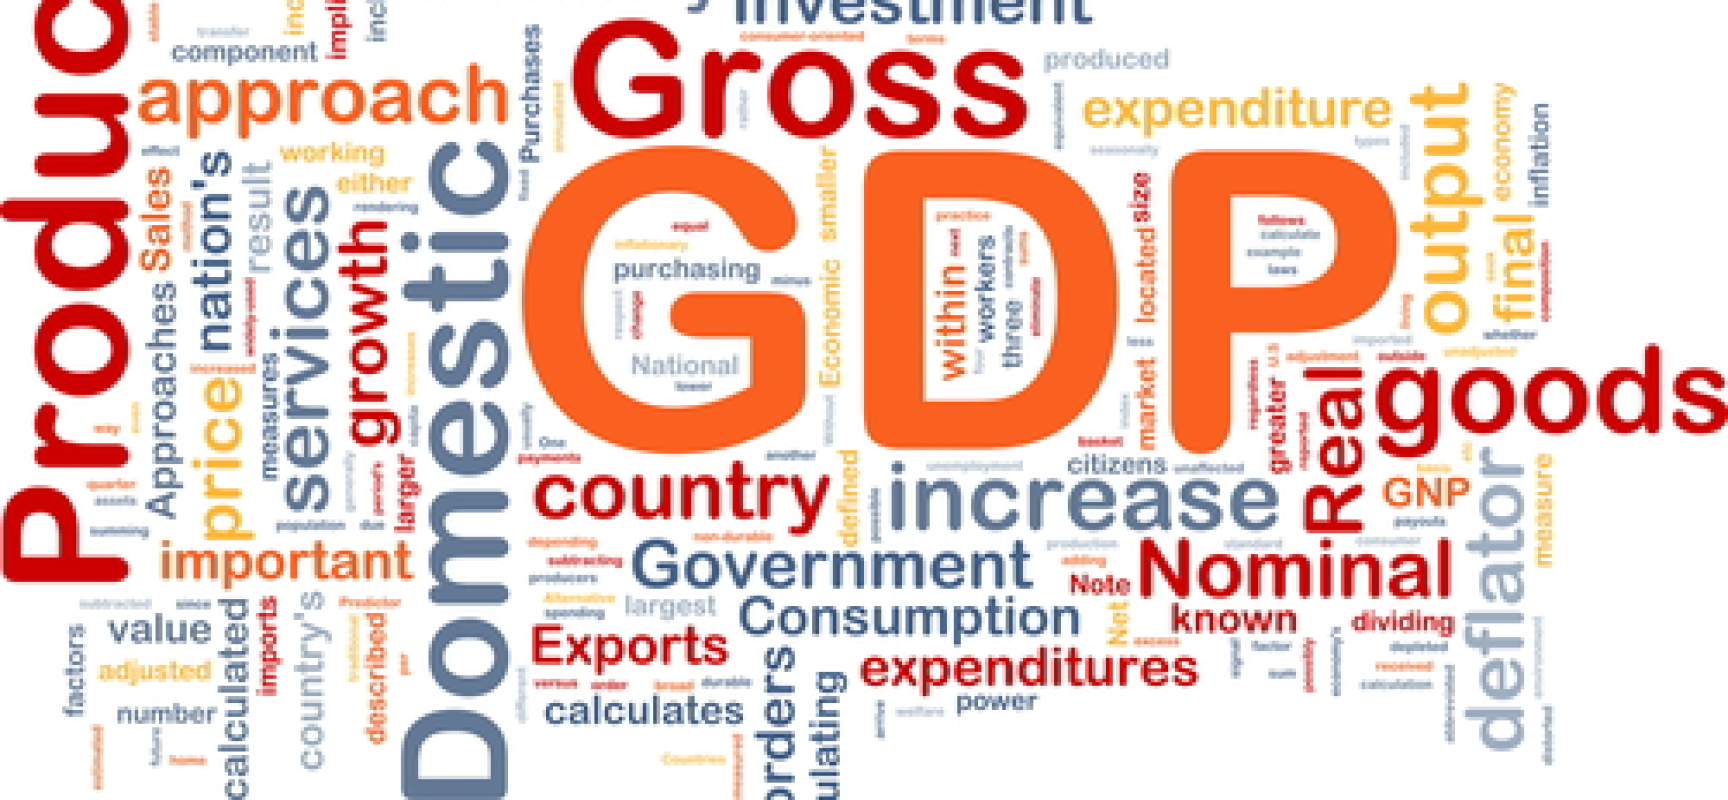 the united states government actions that made the downturn of the gross domestic product